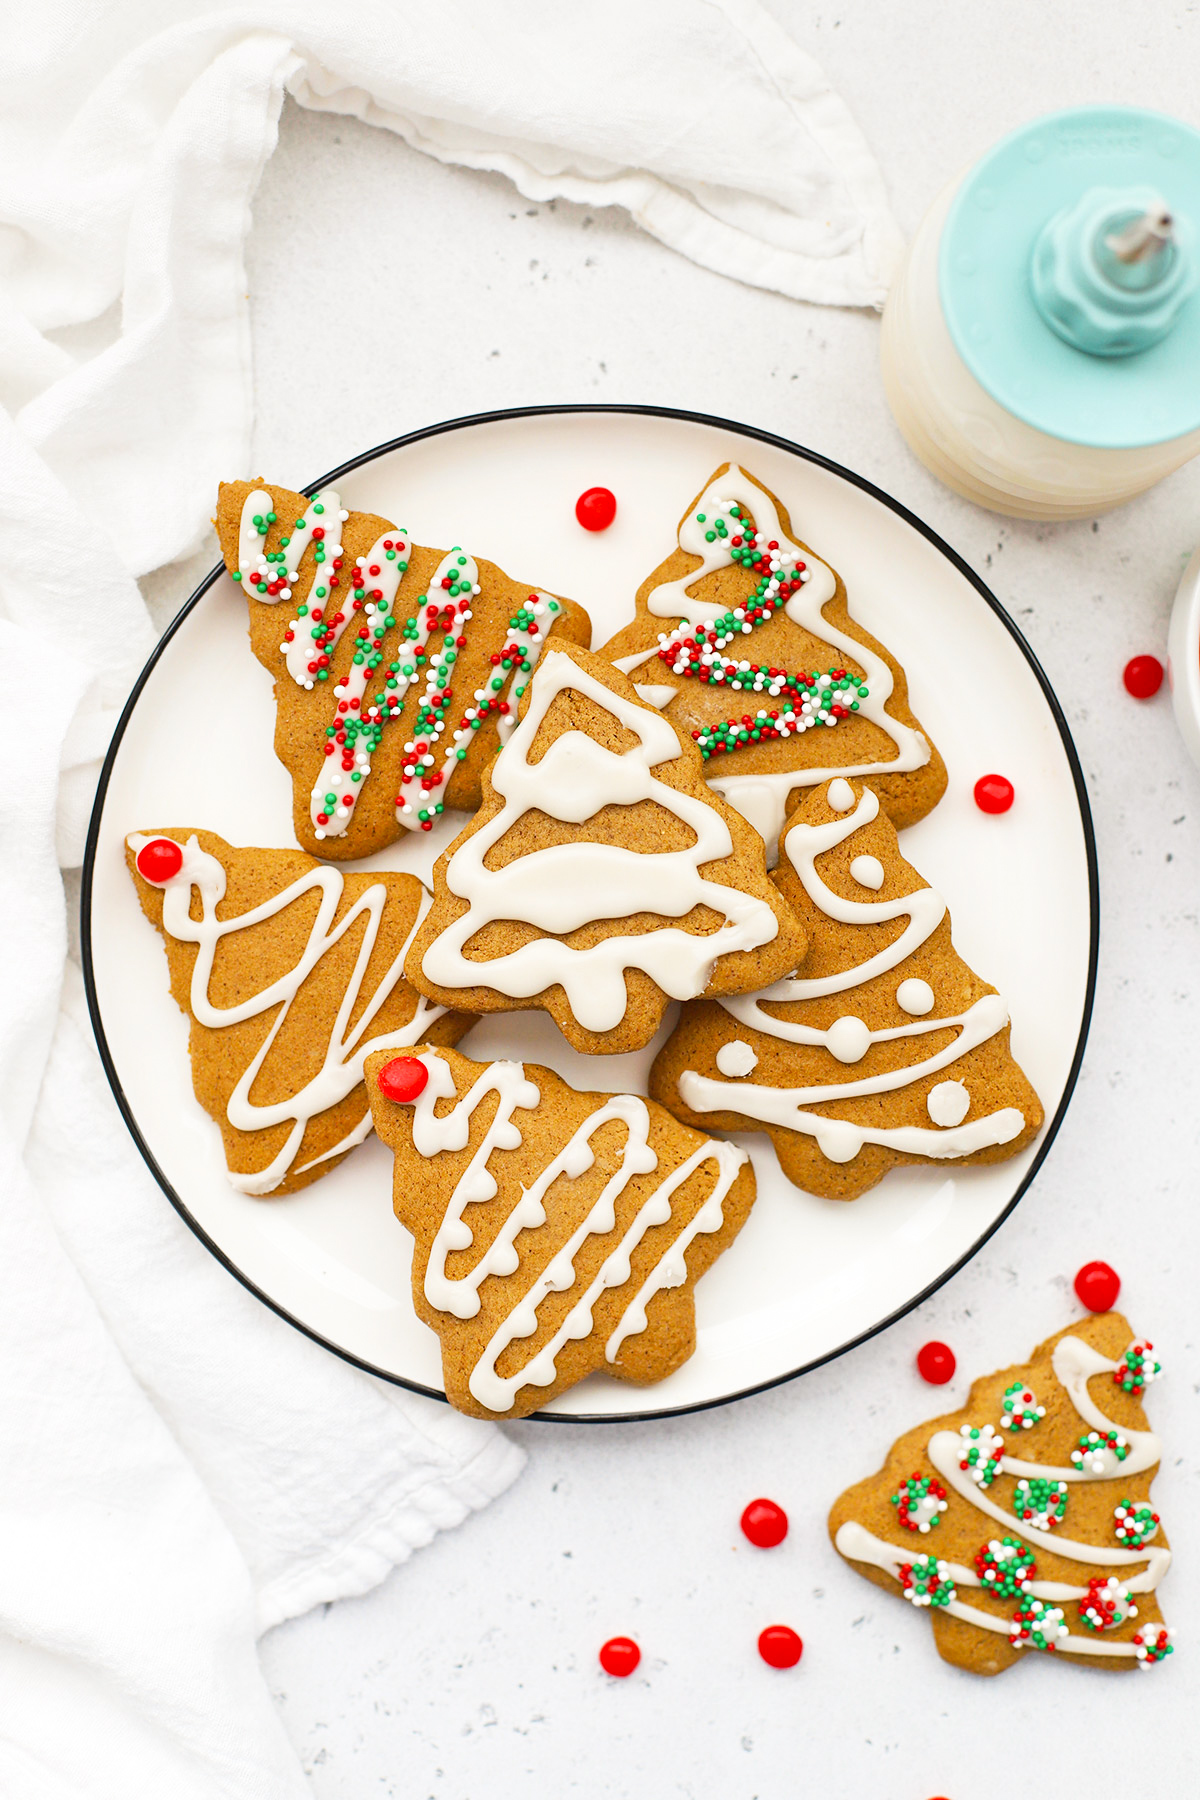 Overhead view of a plate of gluten-free gingerbread cookies shaped like trees decorated with white icing on a white background